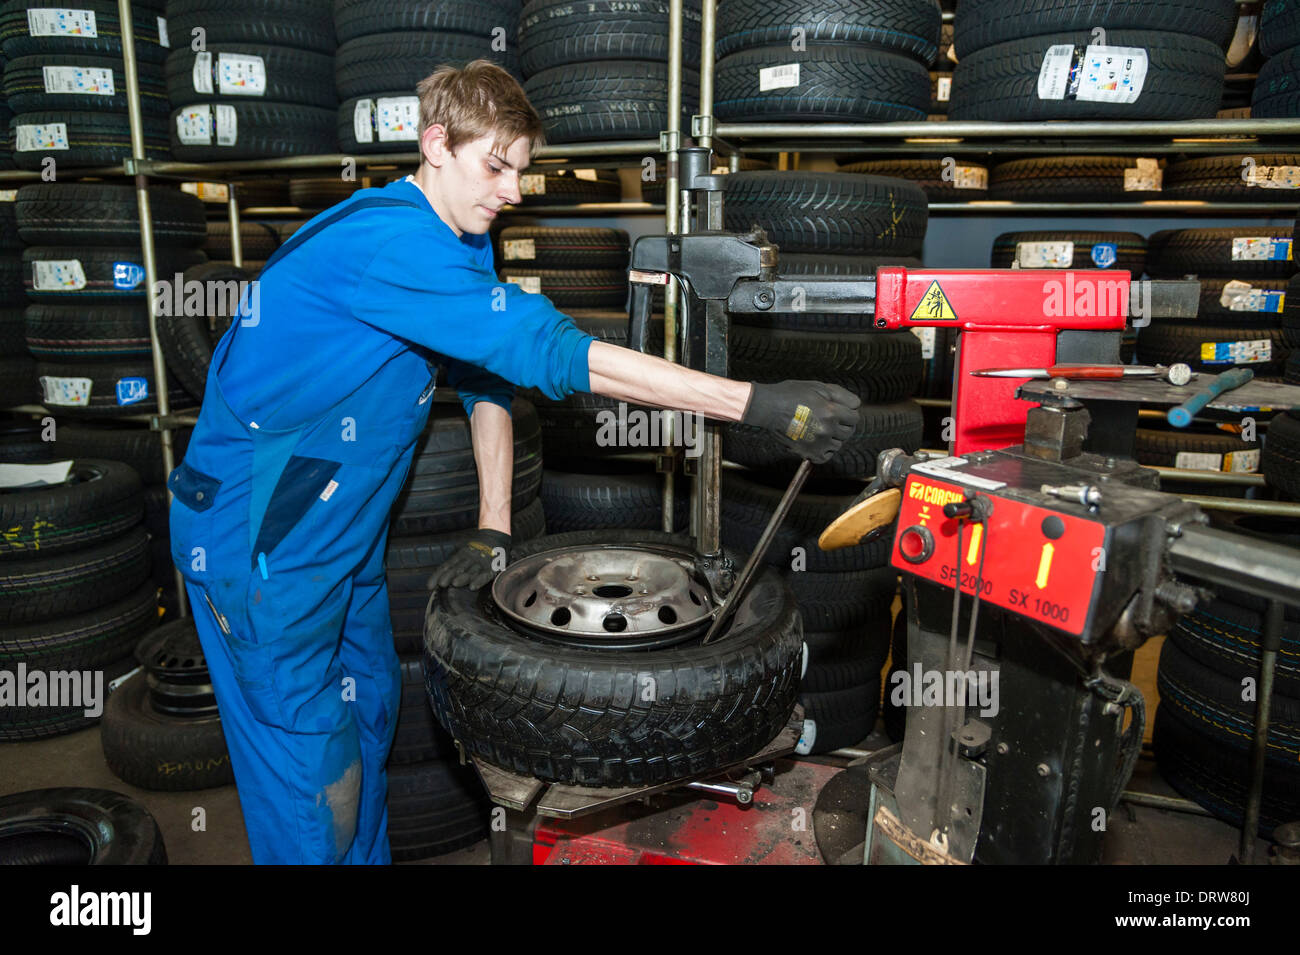 A car mechanic fits a new tyre on a wheel rim. - Stock Image